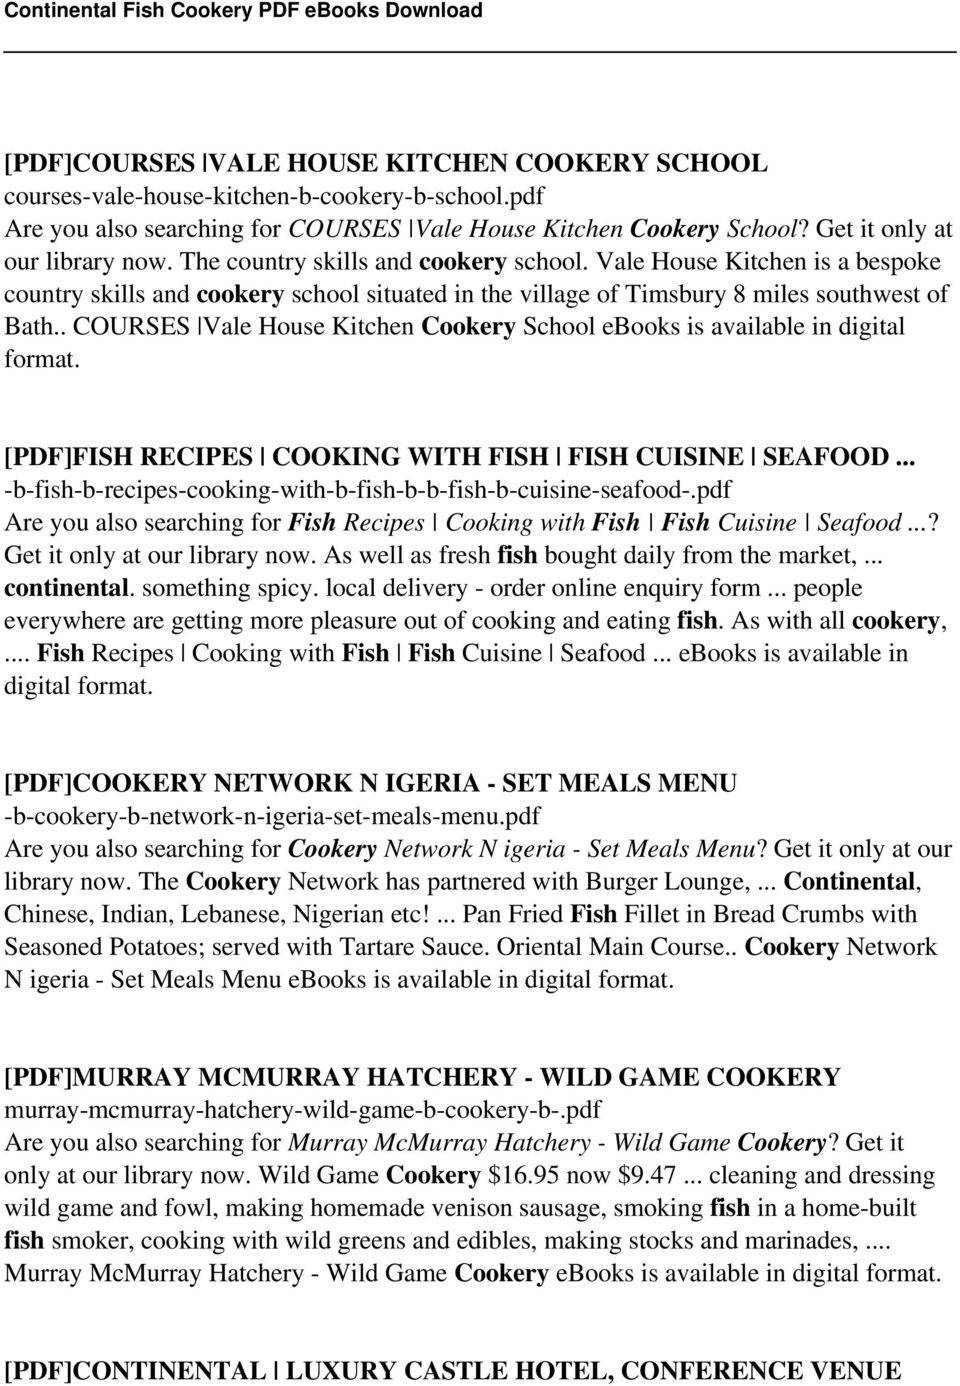 Continental fish cookery pdf pdf courses vale house kitchen cookery school ebooks is available in digital format pdf fandeluxe Gallery